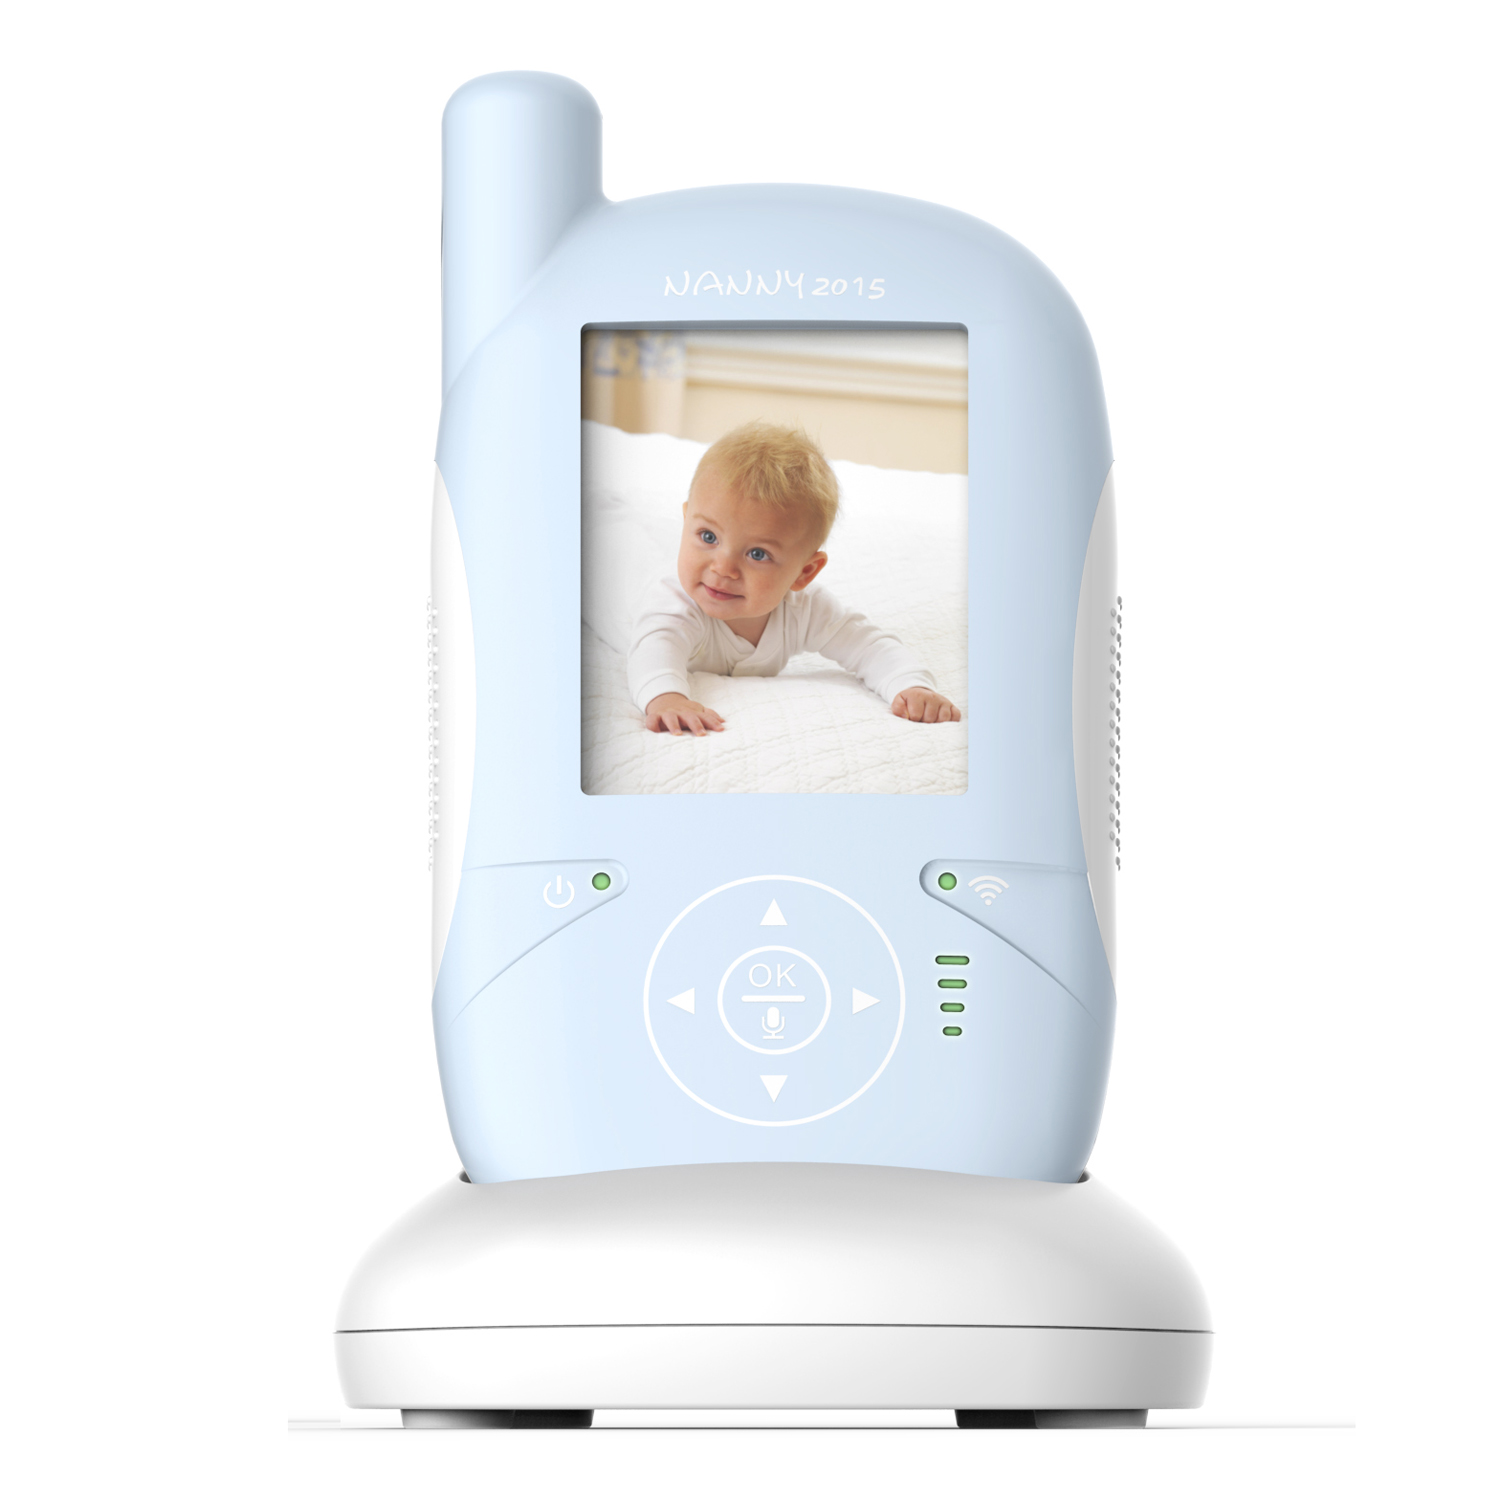 Wireless Video Monitor Security Camera Baby Kids LCD Screen 2 Way Talk Night Vision 2.4G IR LED Temperature BPA Free Hassle-Free